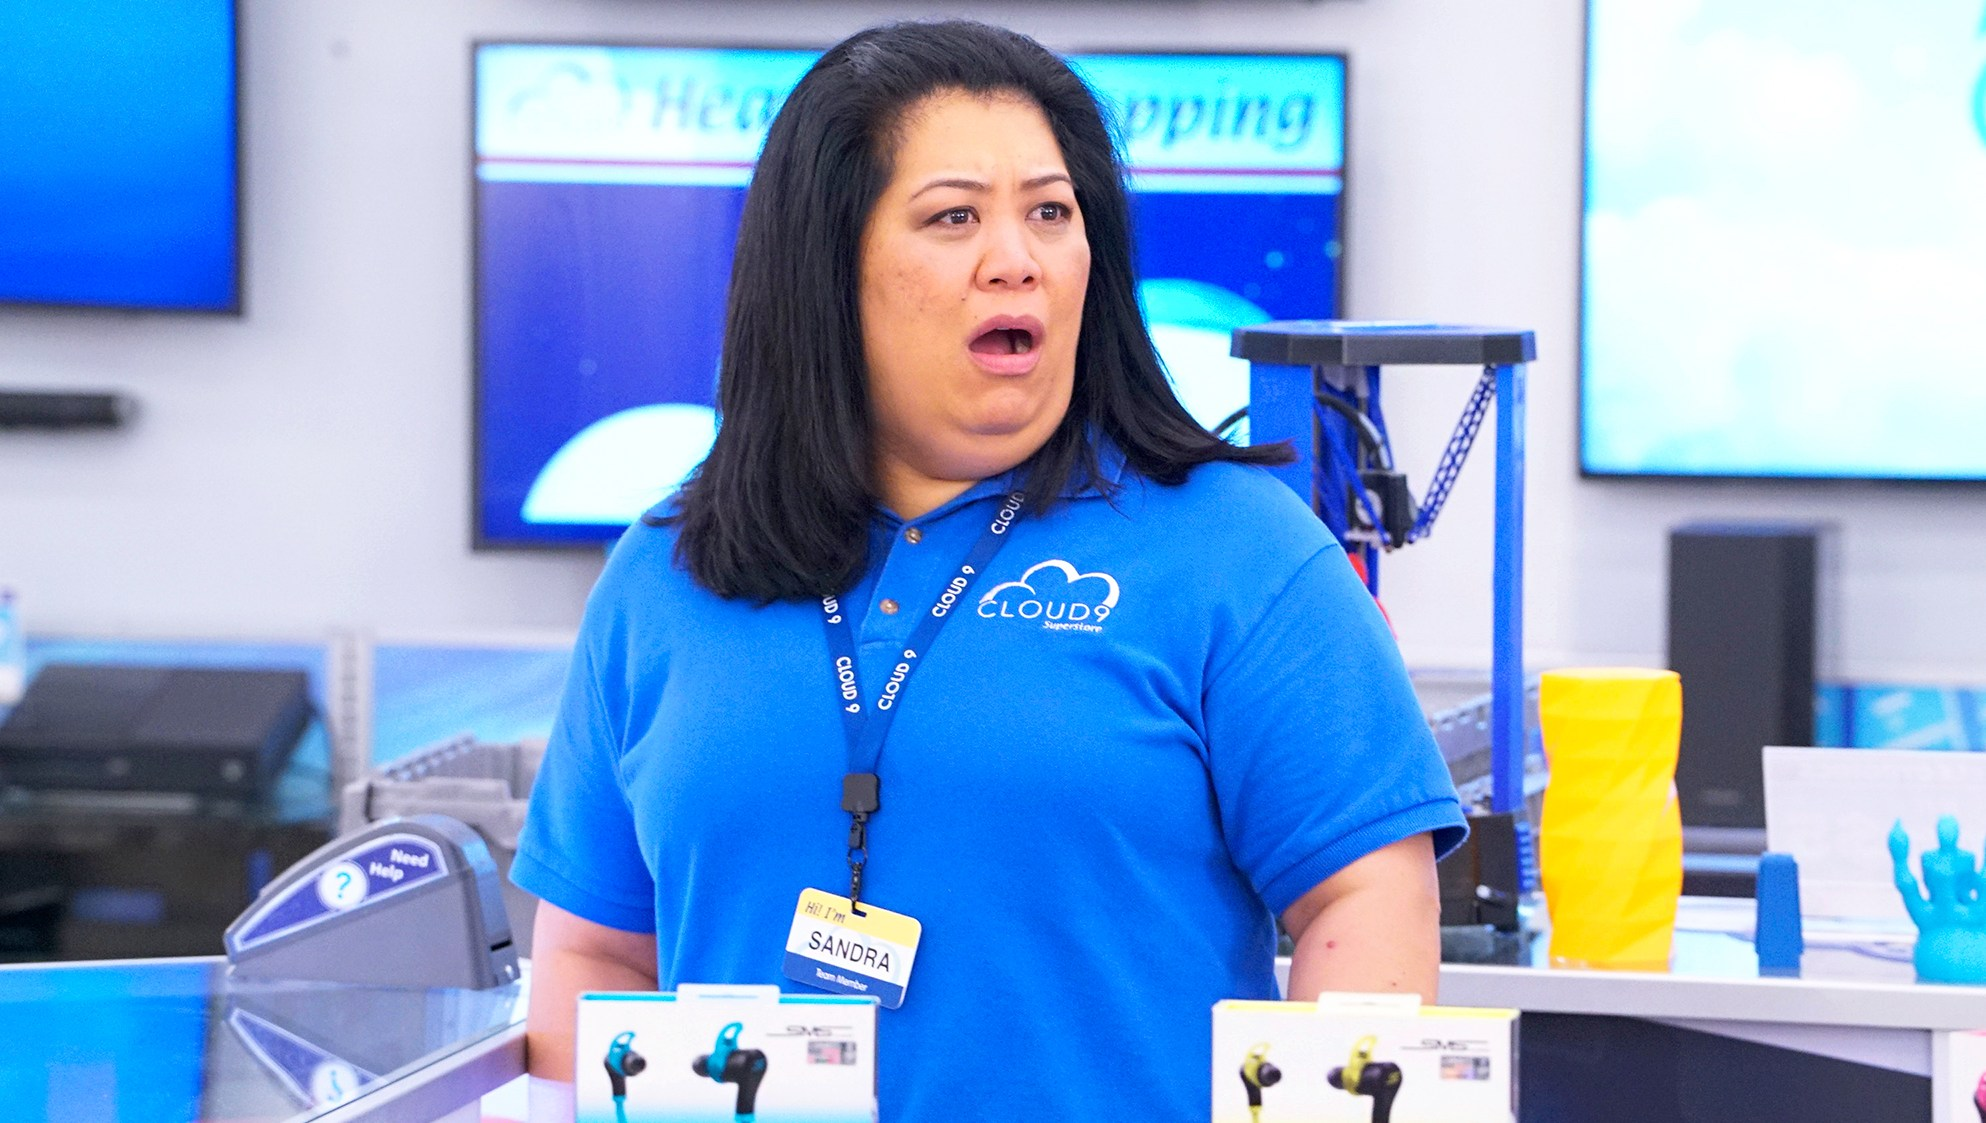 Kaliko Kauahi as Sandra on 'Superstore'